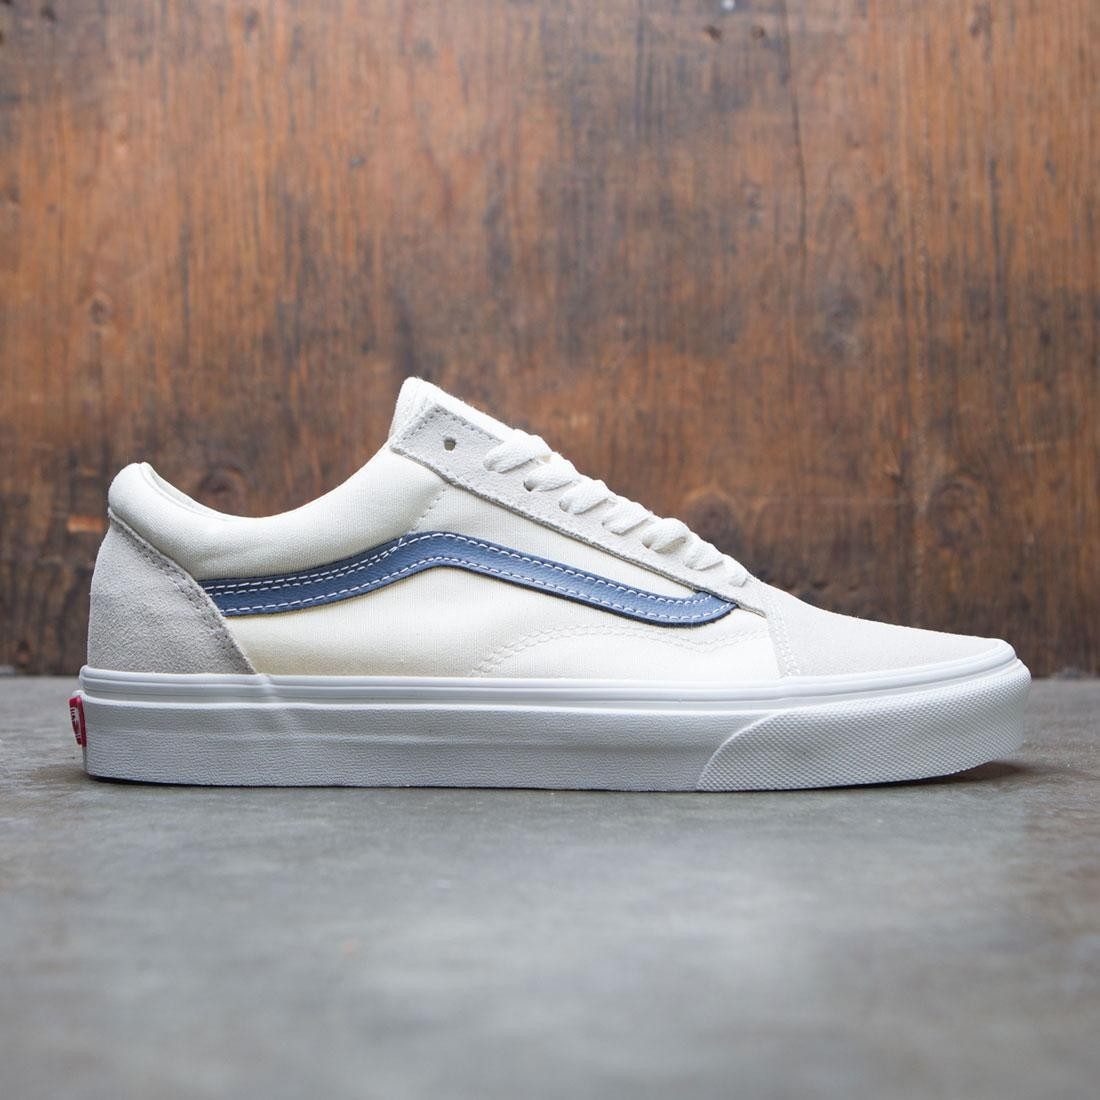 Vans Men Old Skool - Vintage (white / blue)